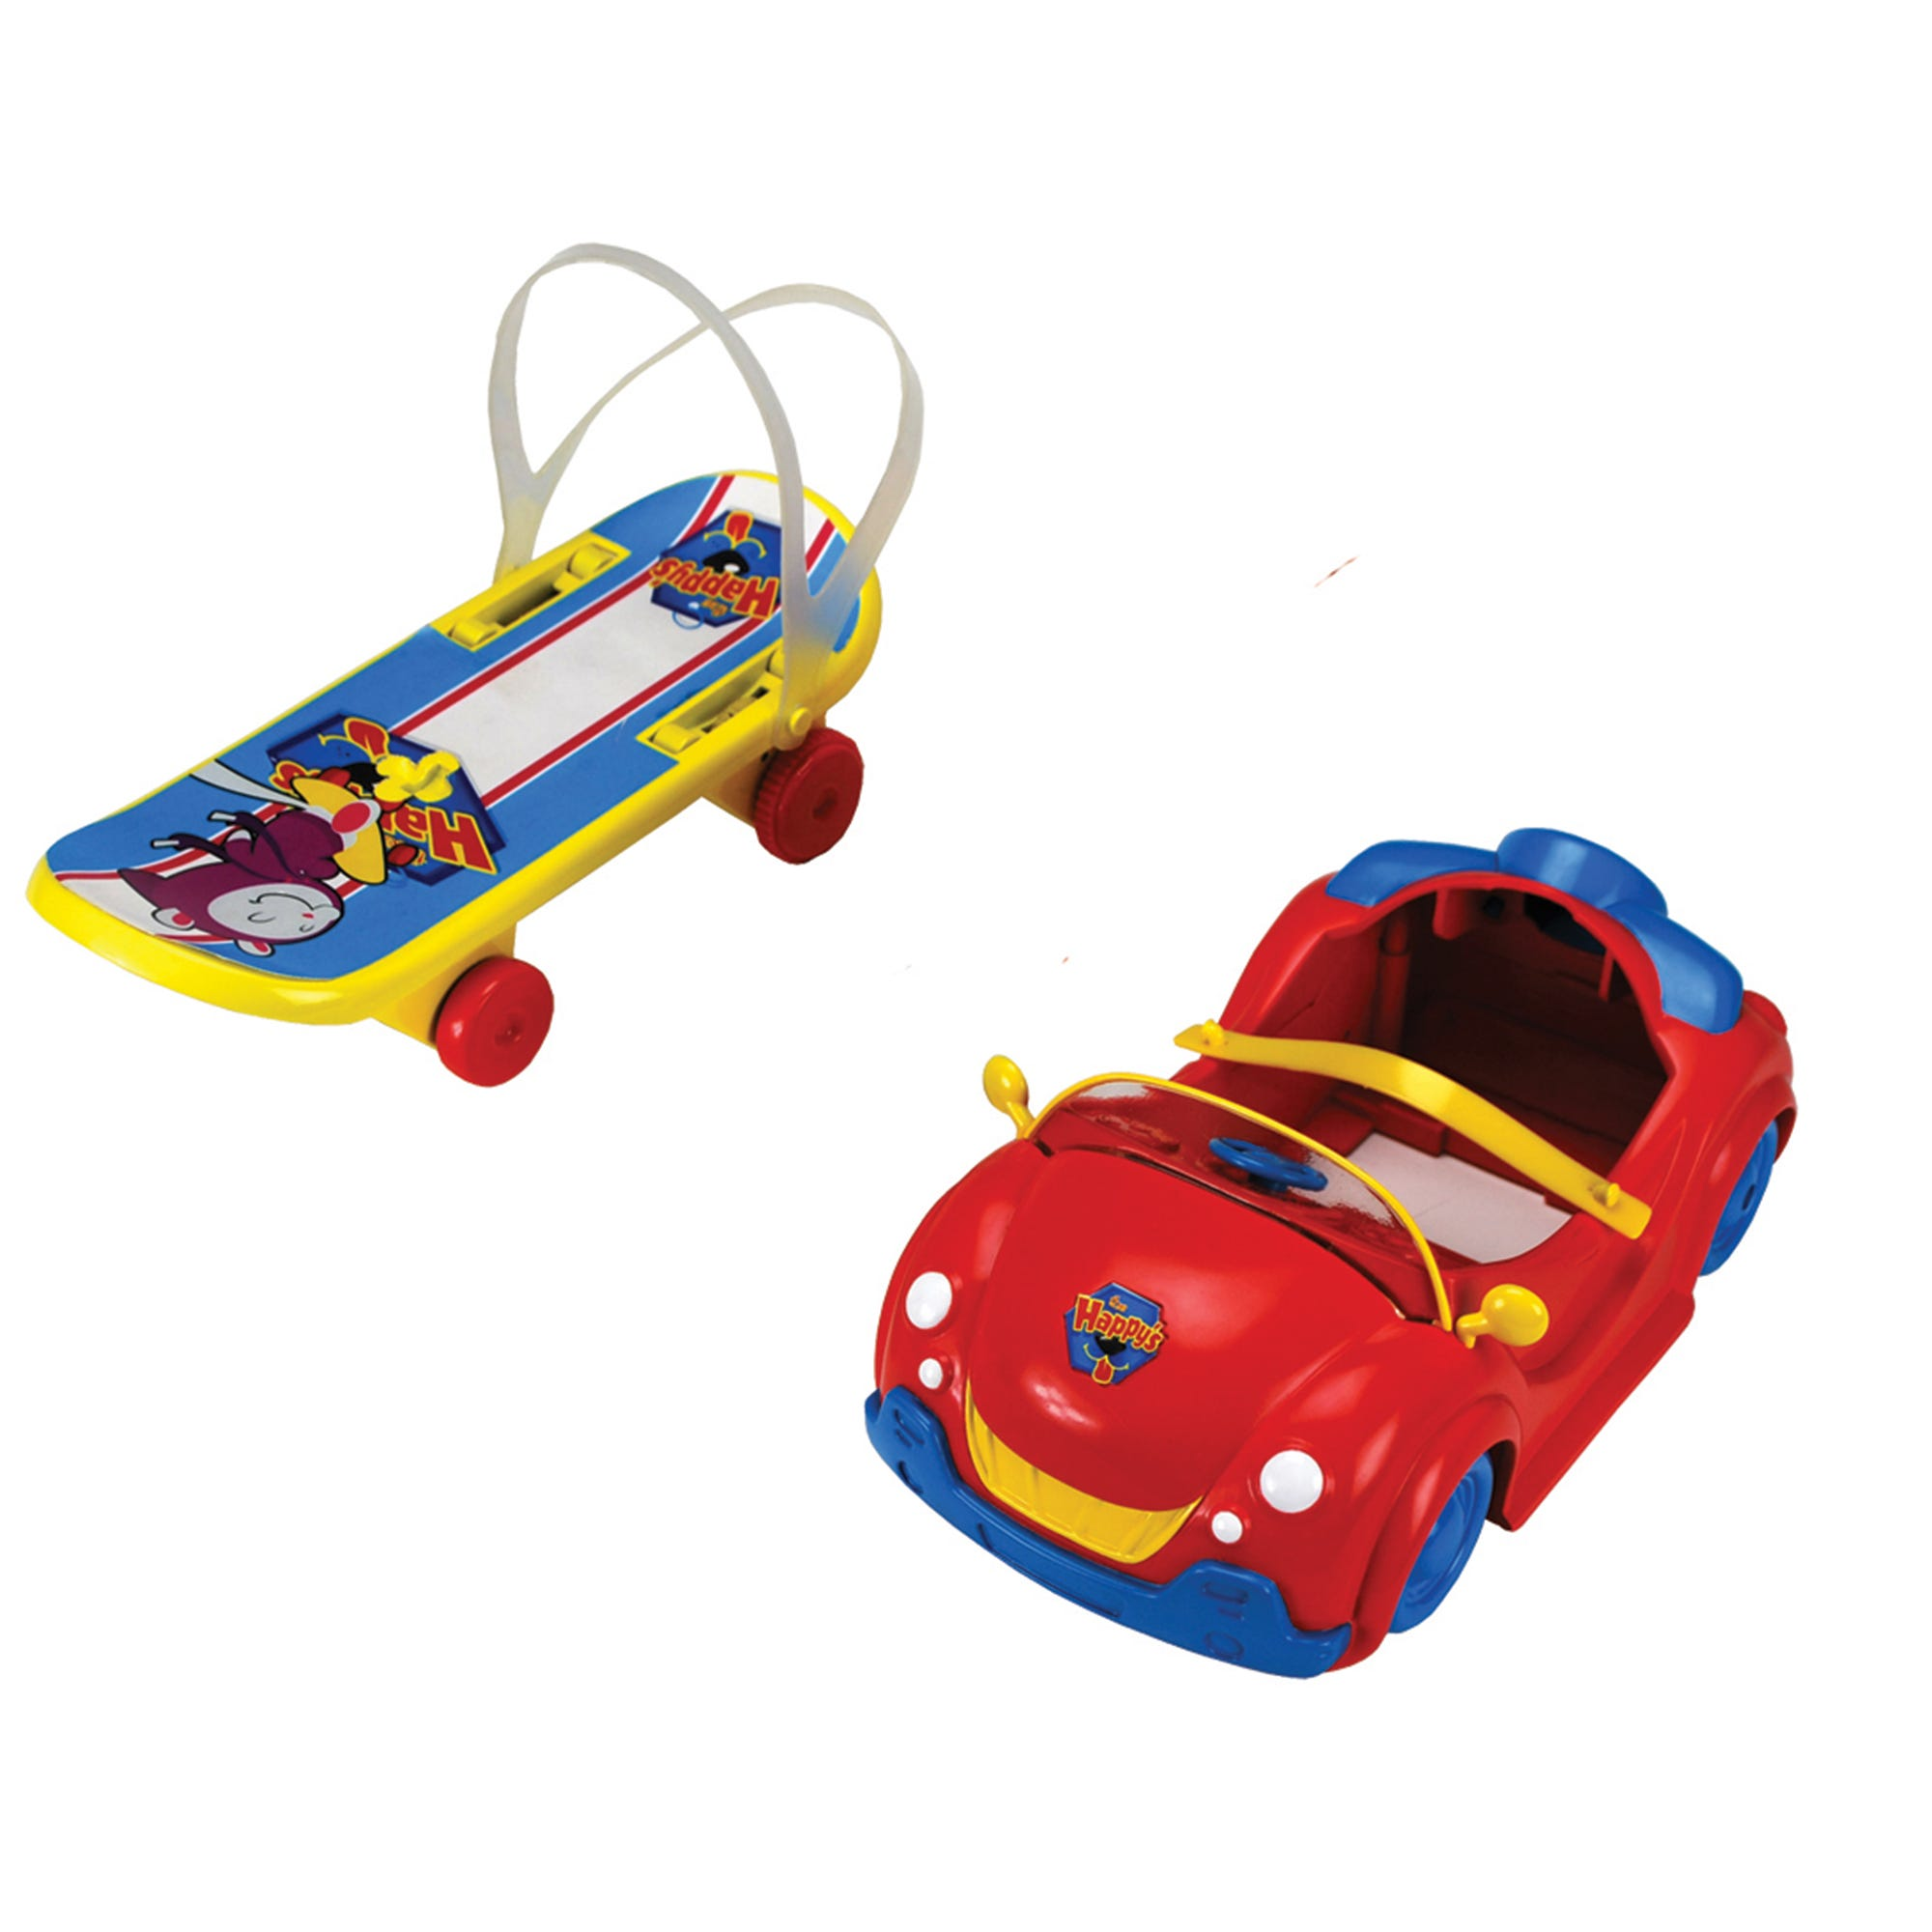 The Happys Ride On Accessories Car & Skateboard Assortment